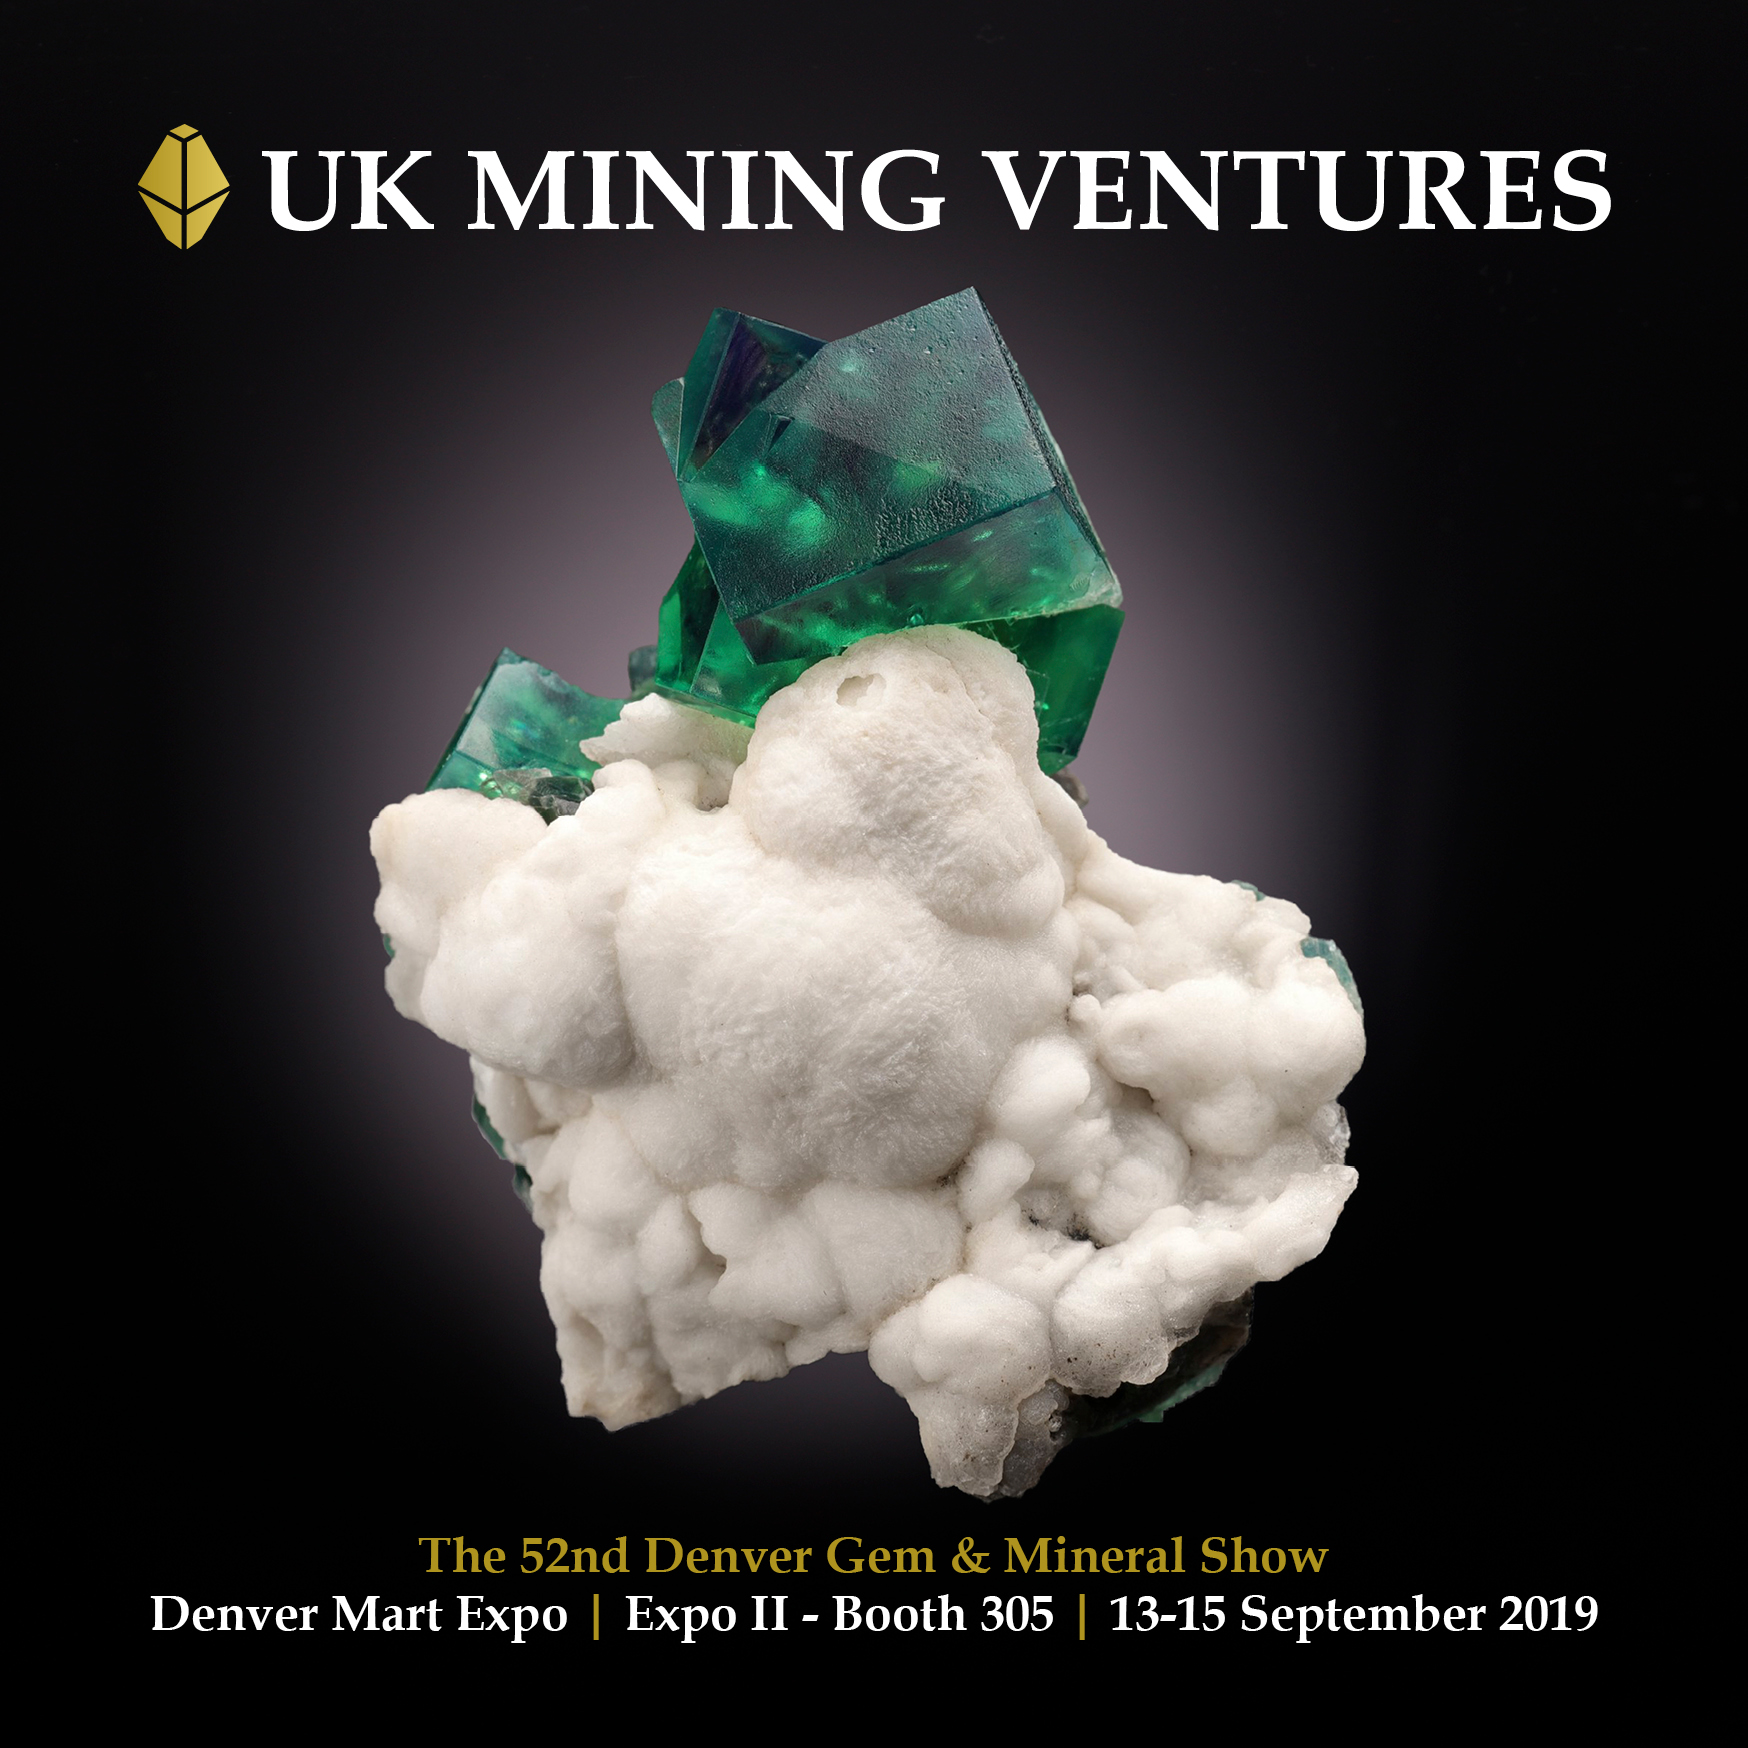 The Denver Gem & Mineral Show 2019